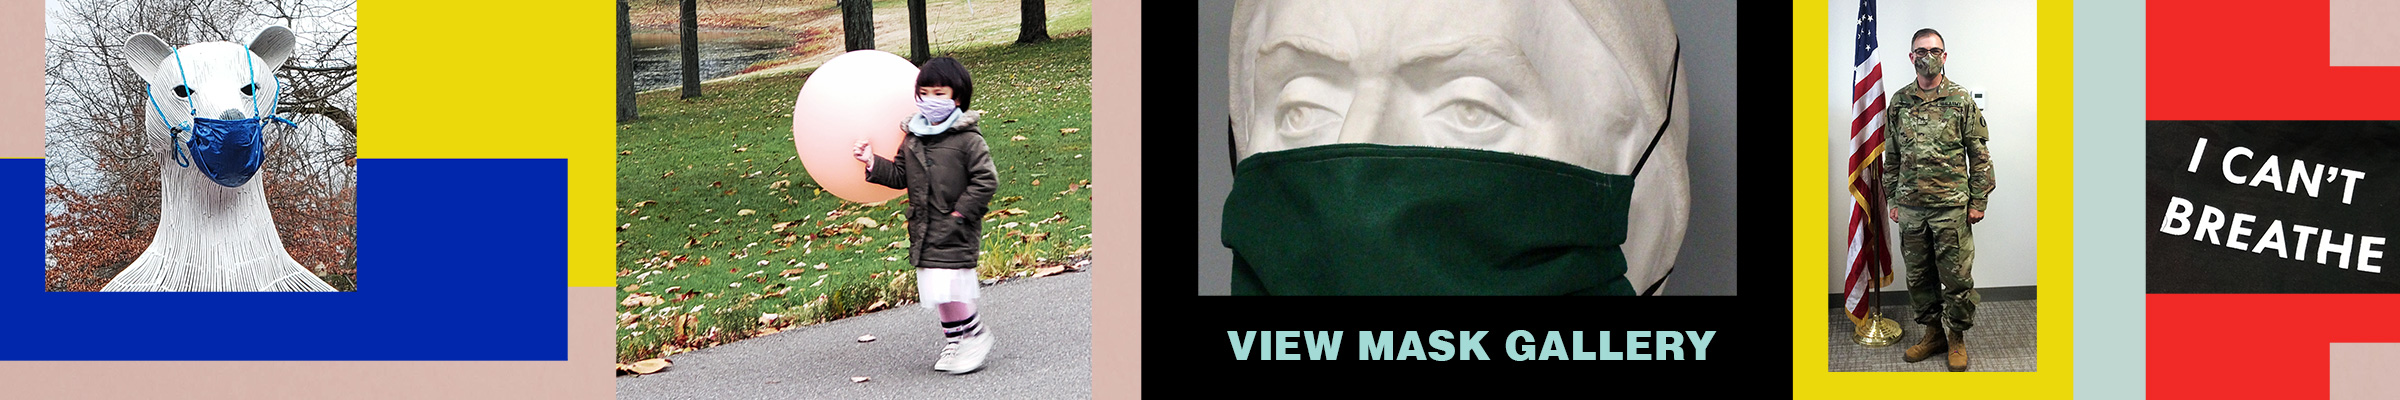 View Mask Gallery